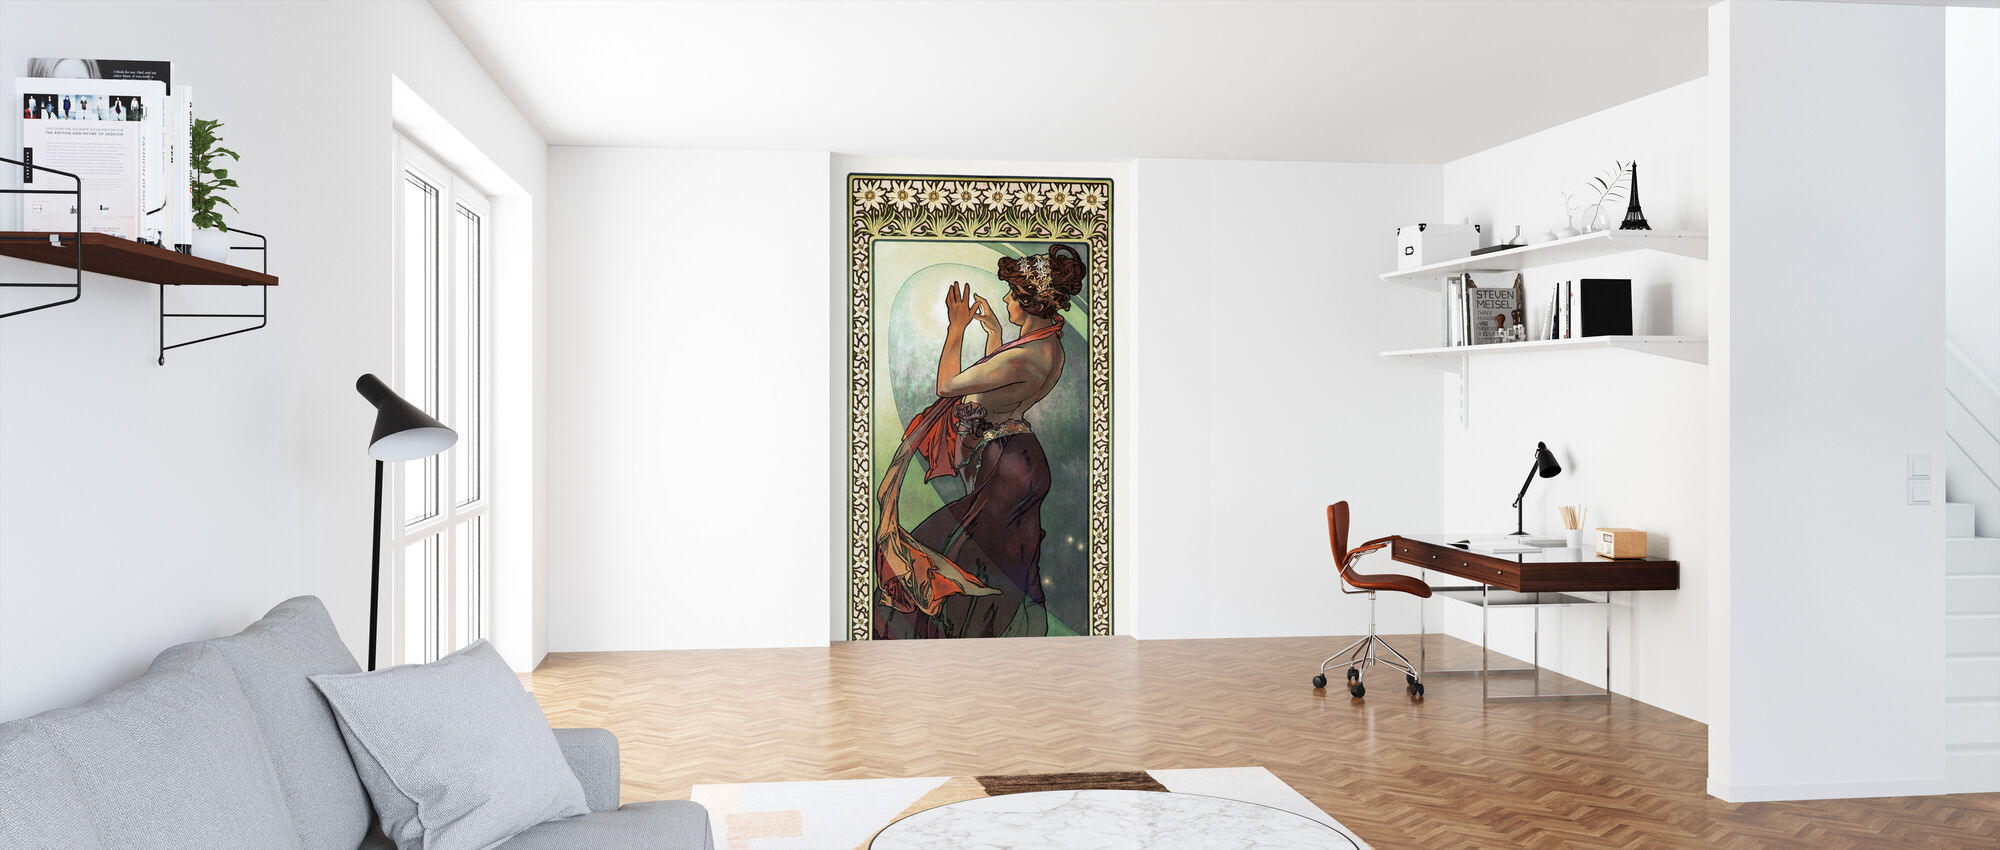 Alphonse Mucha - Fleece Star - Wallpaper - Office